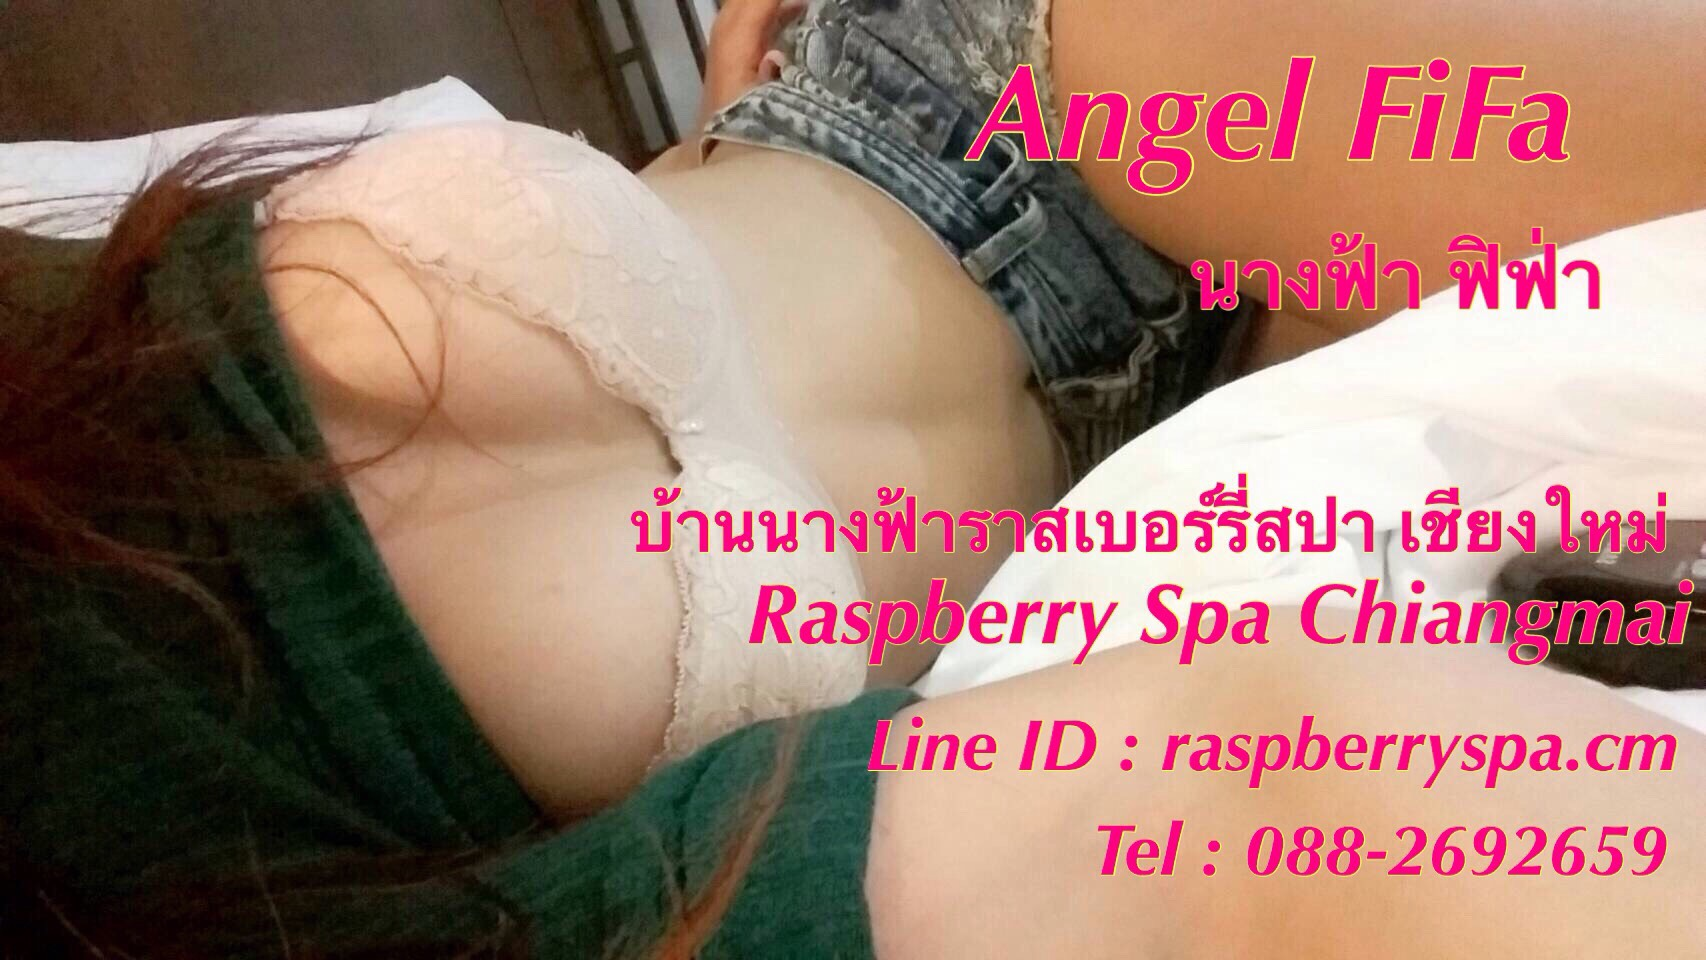 Raspberry Spa Chiang Mai - massage by sexy Thai student girls